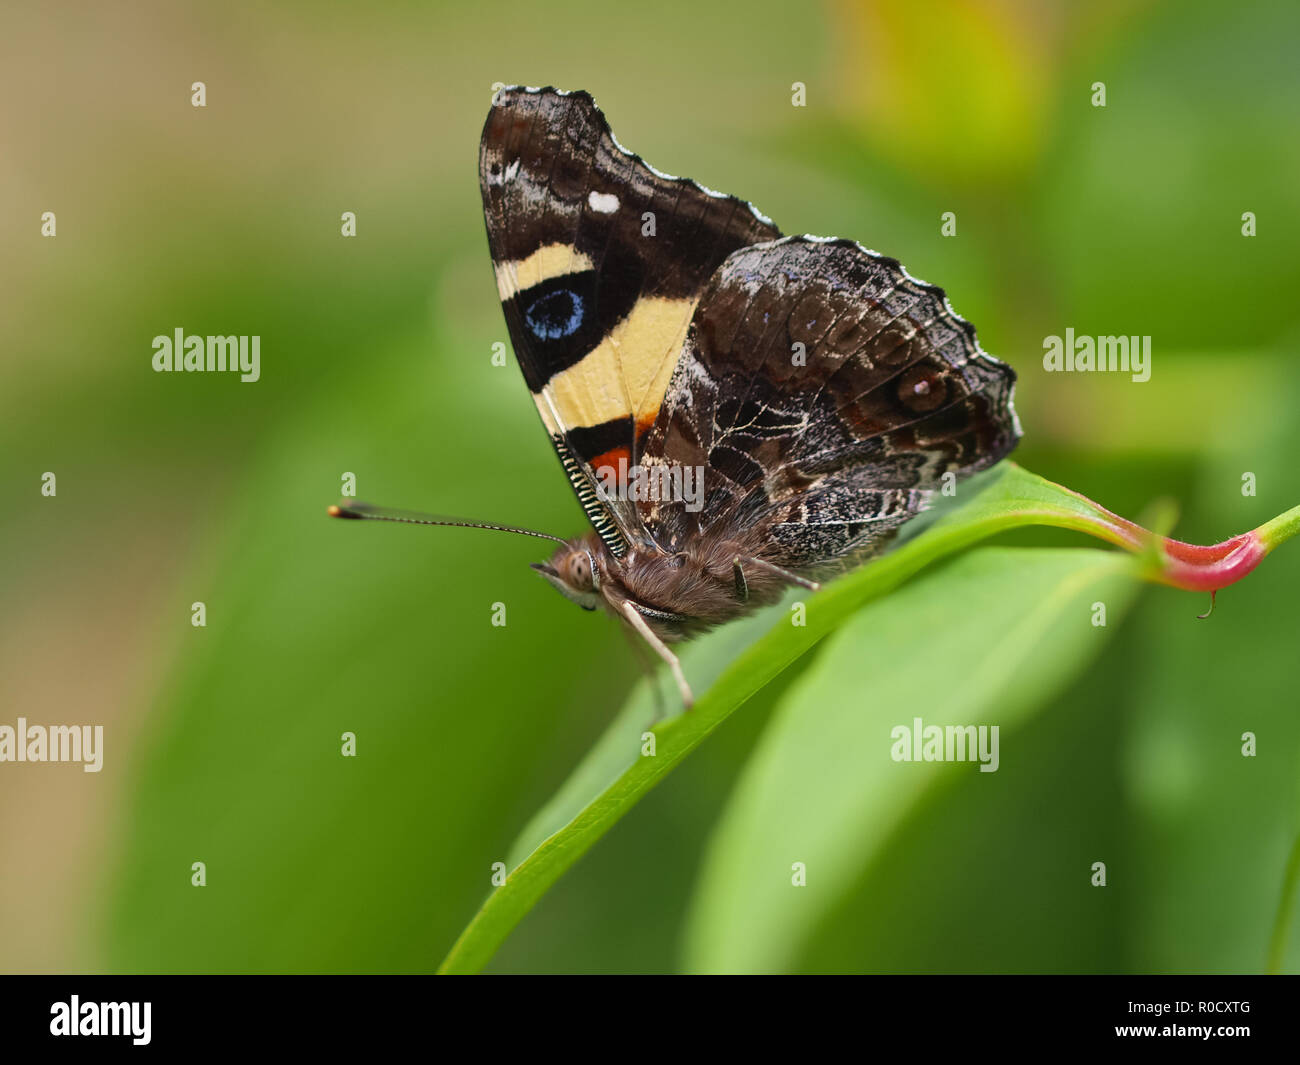 Beautiful Wild Butterfly - Feeding on Flowers - Stock Image